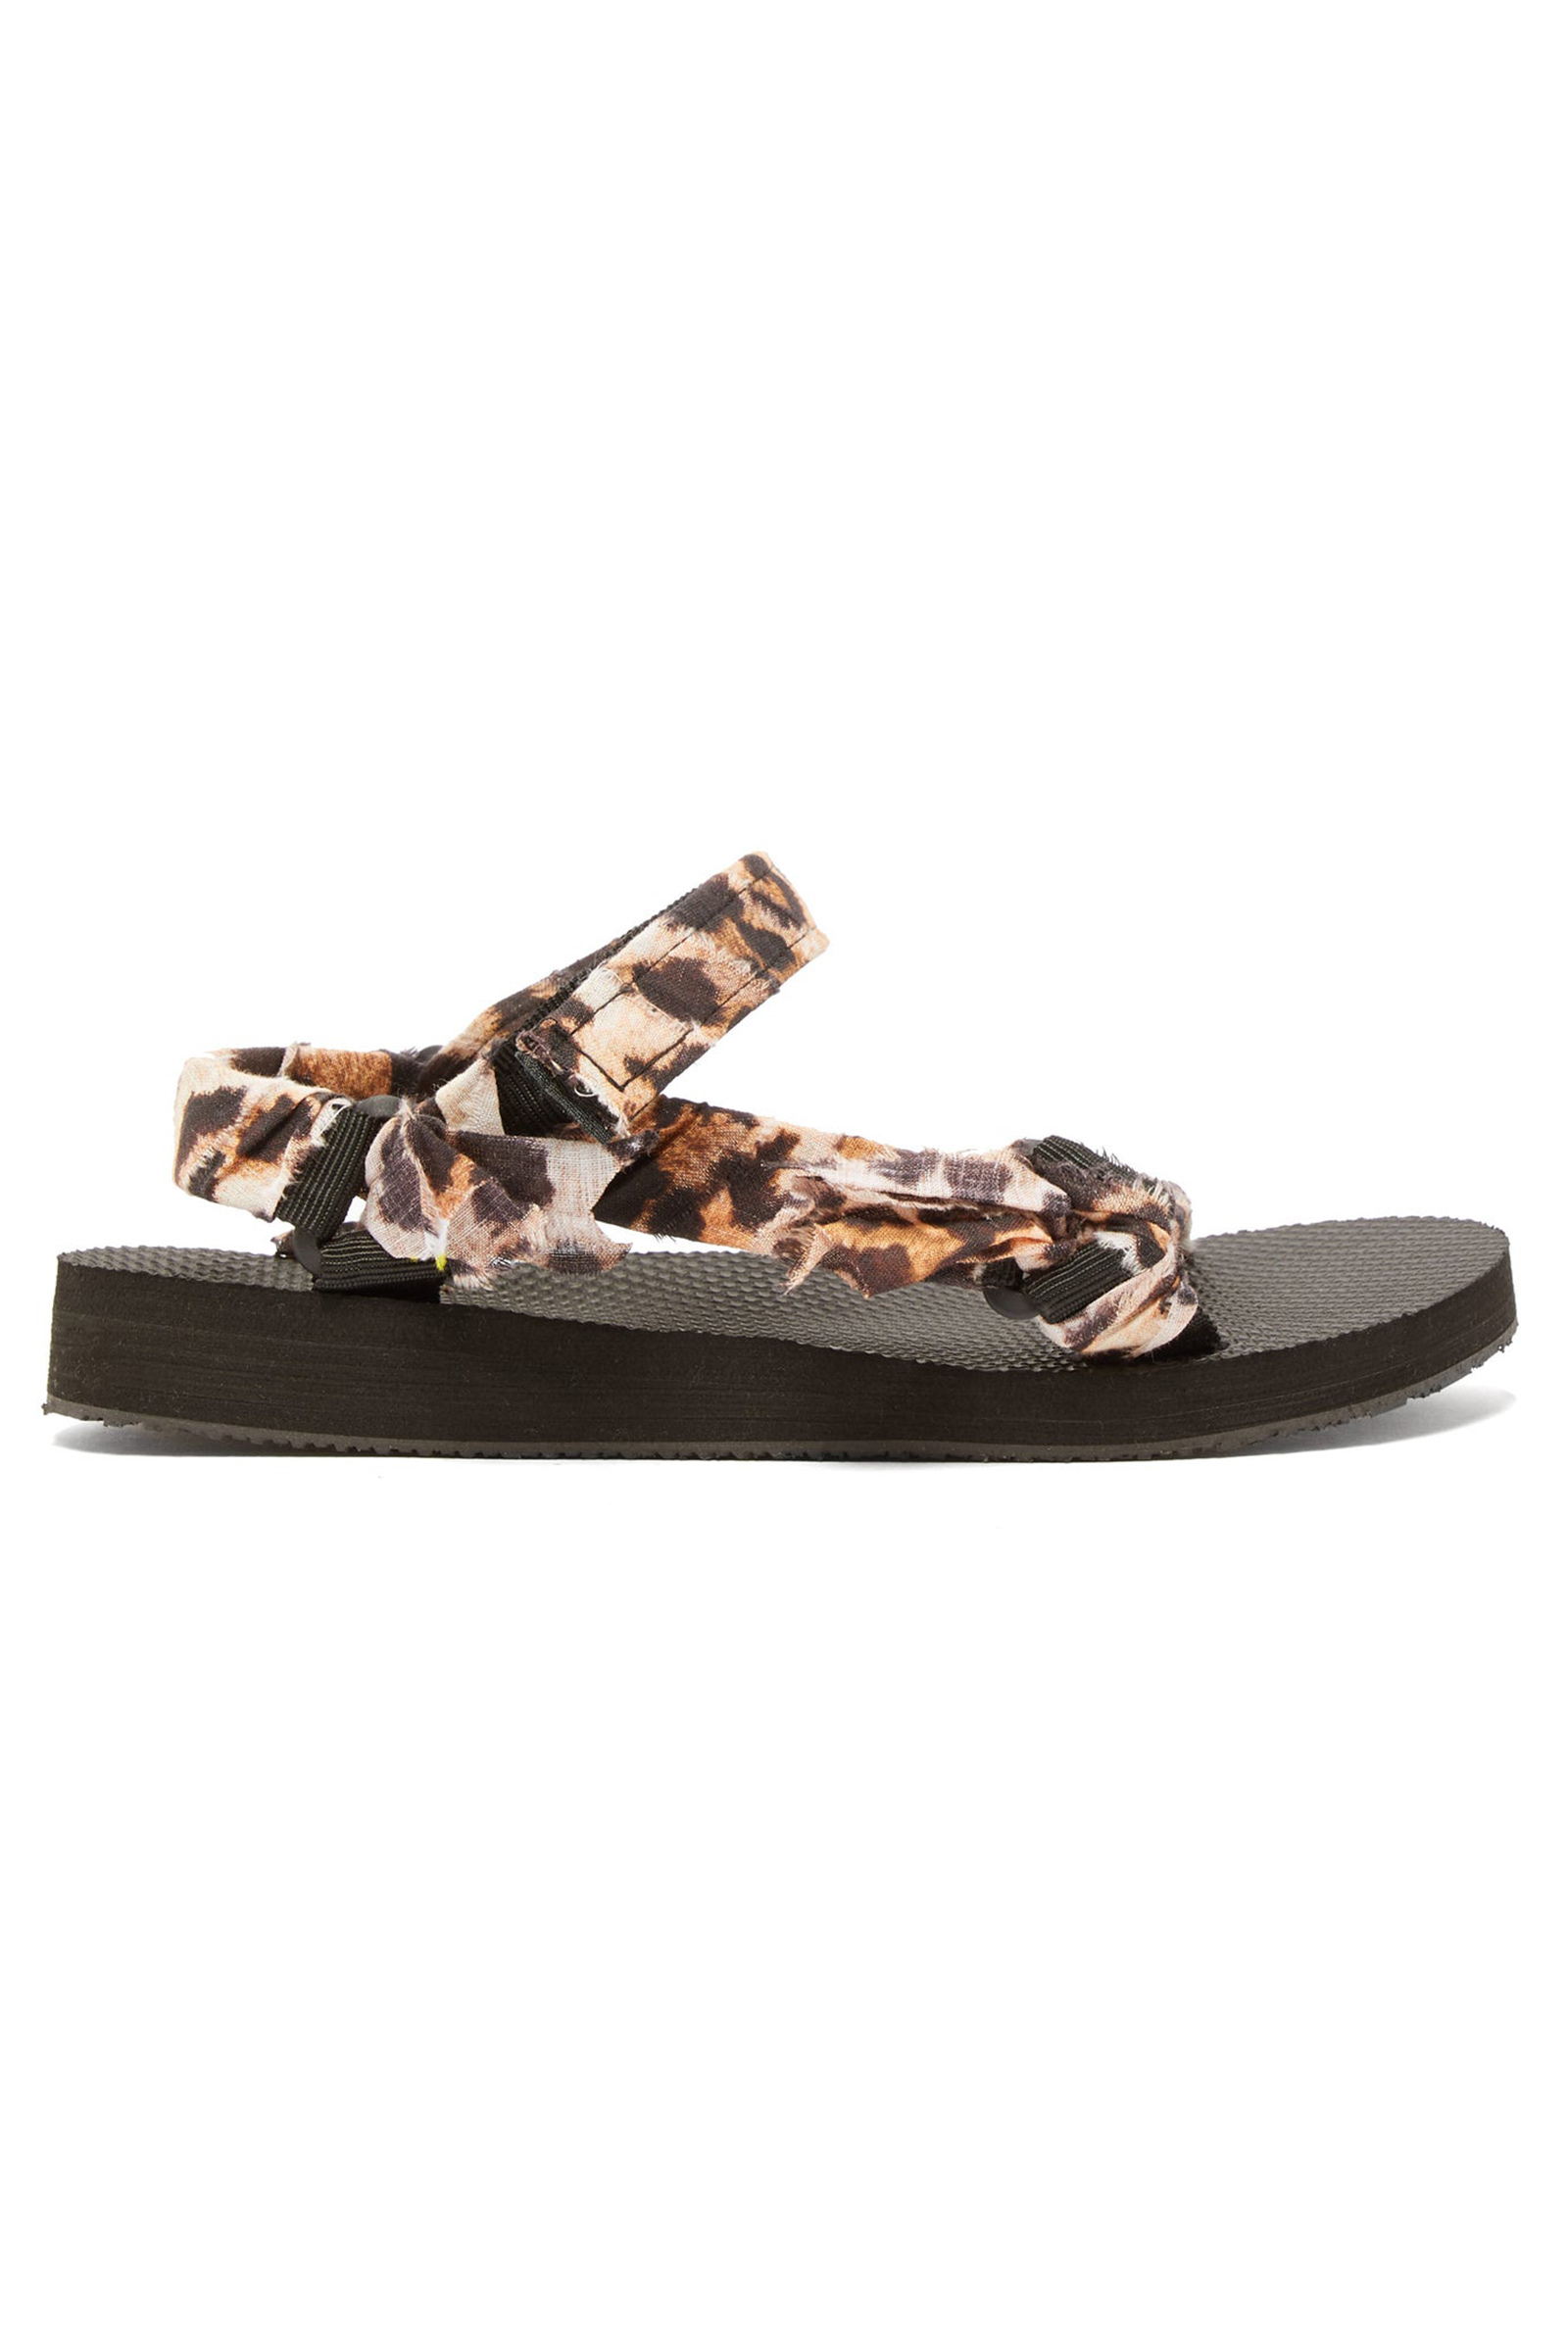 Arizona Love Sandals